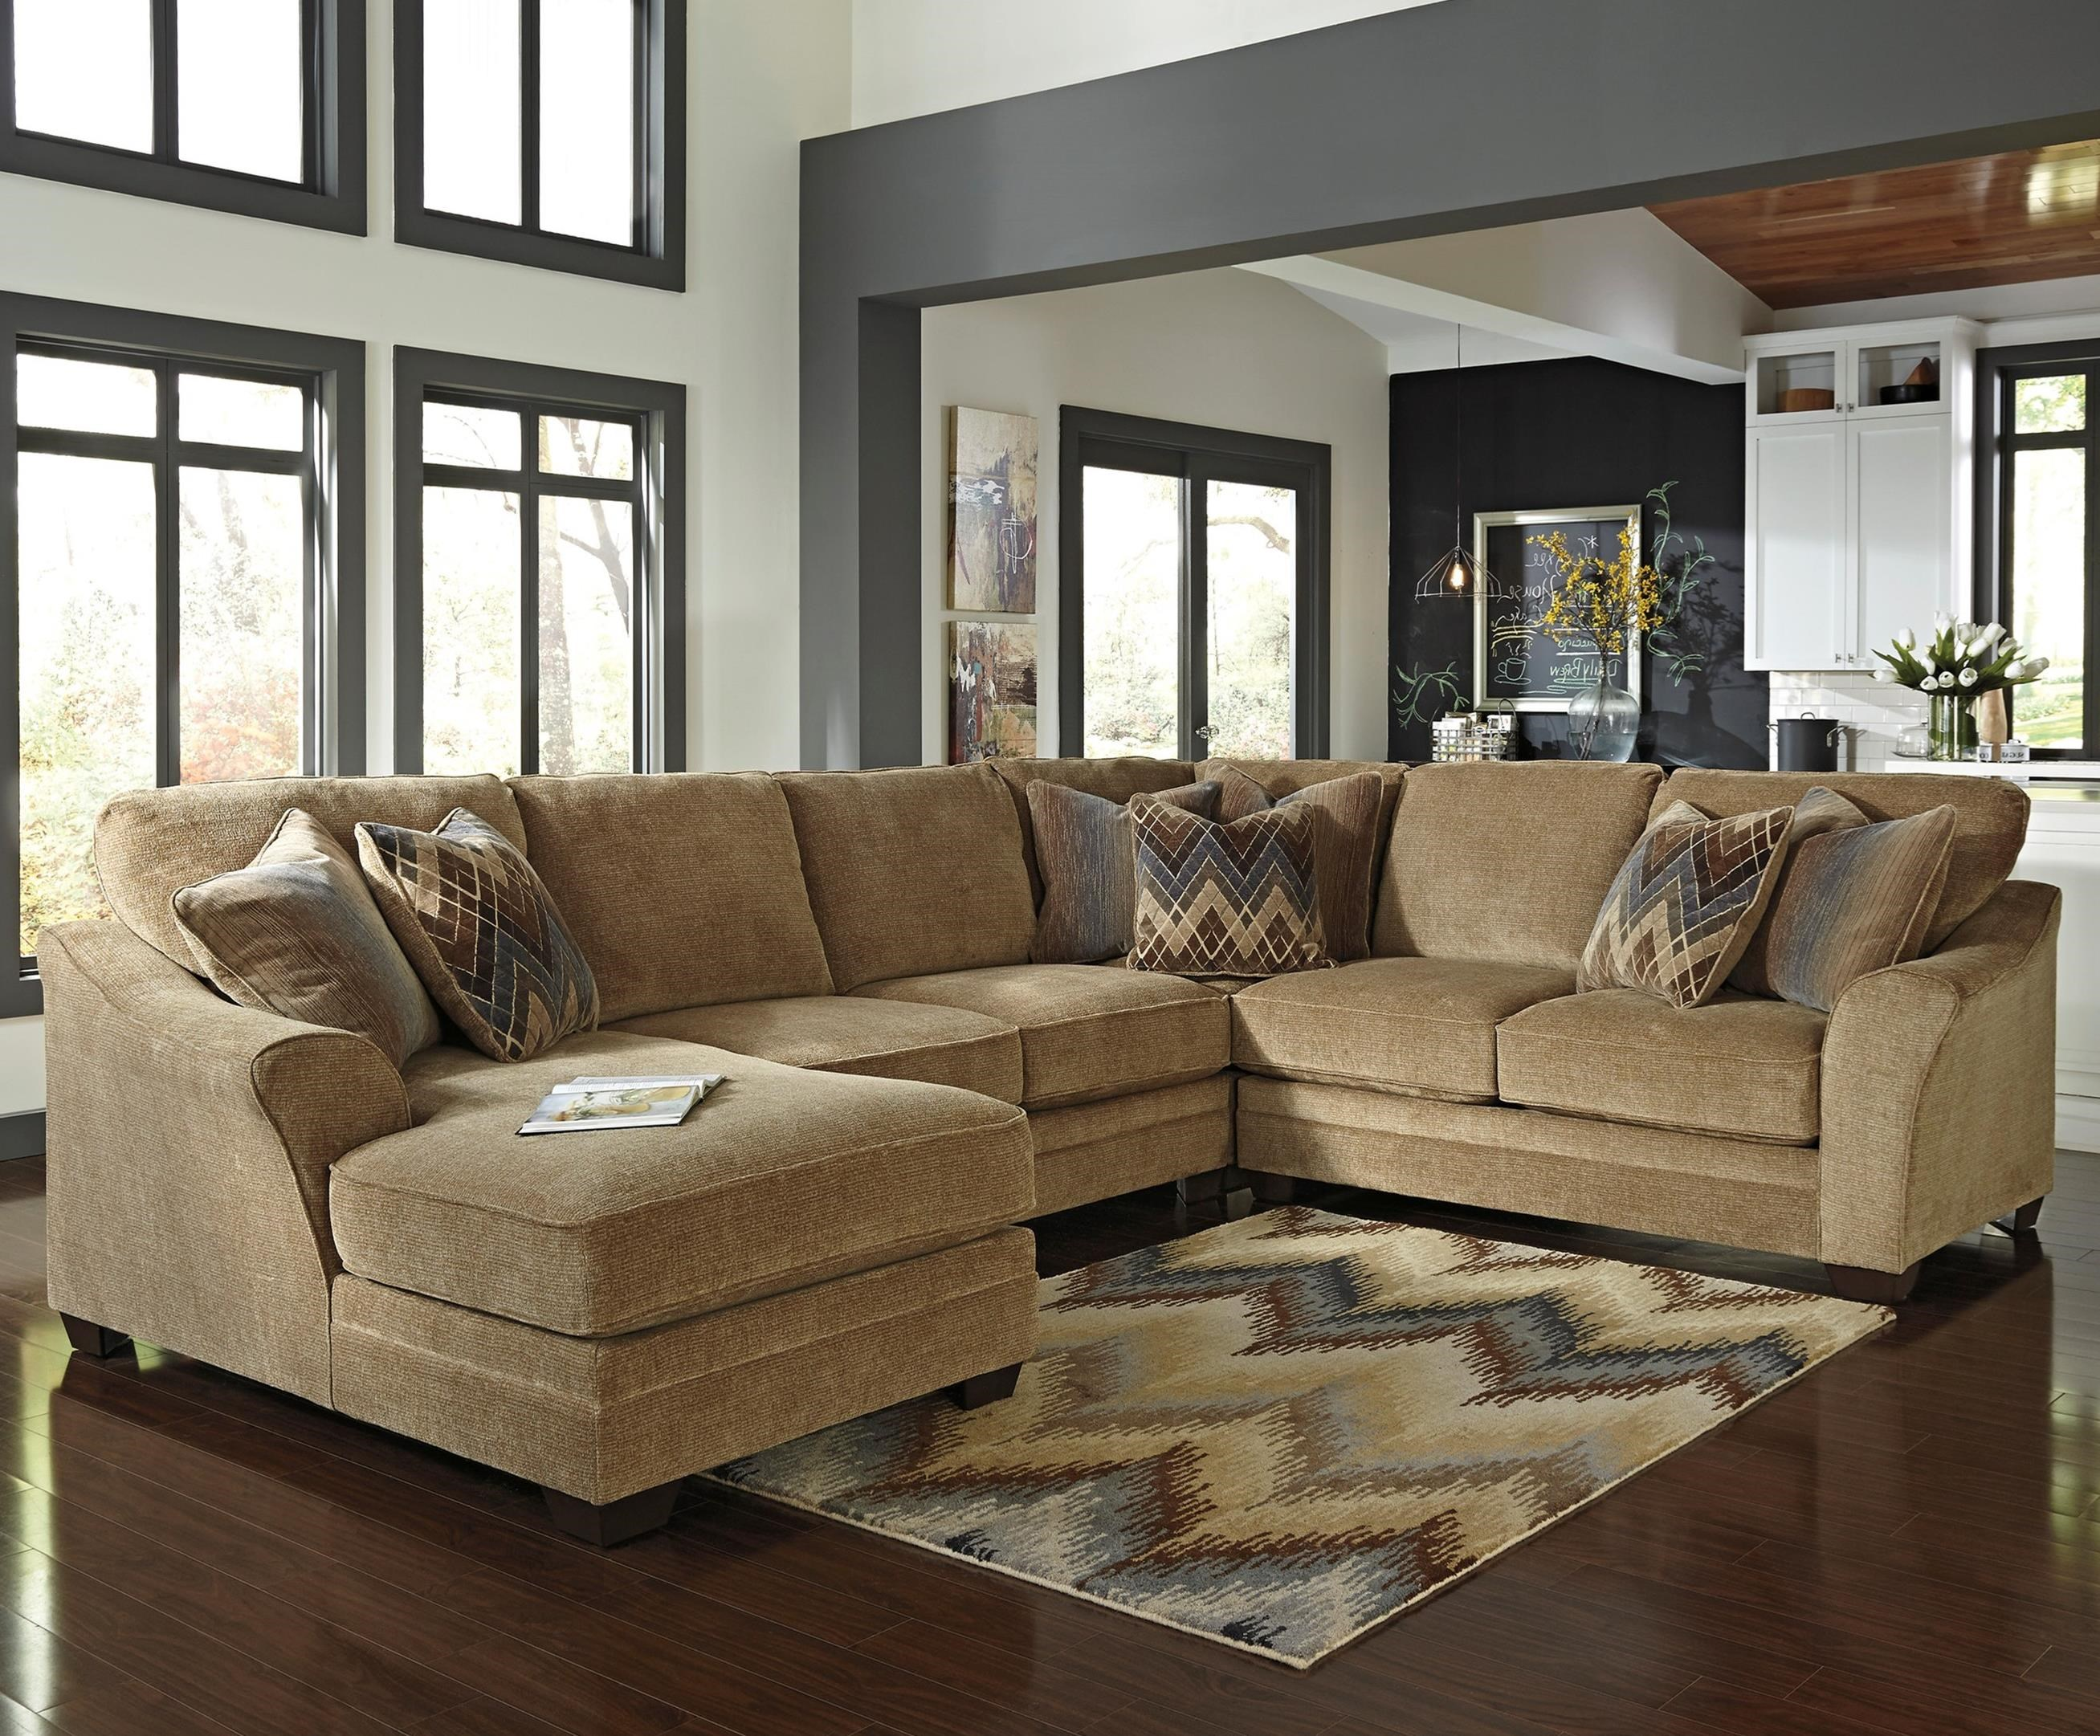 Benchcraft Lonsdale 4-Piece Sectional with Left Chaise - Item Number: 9211116+34+77+56